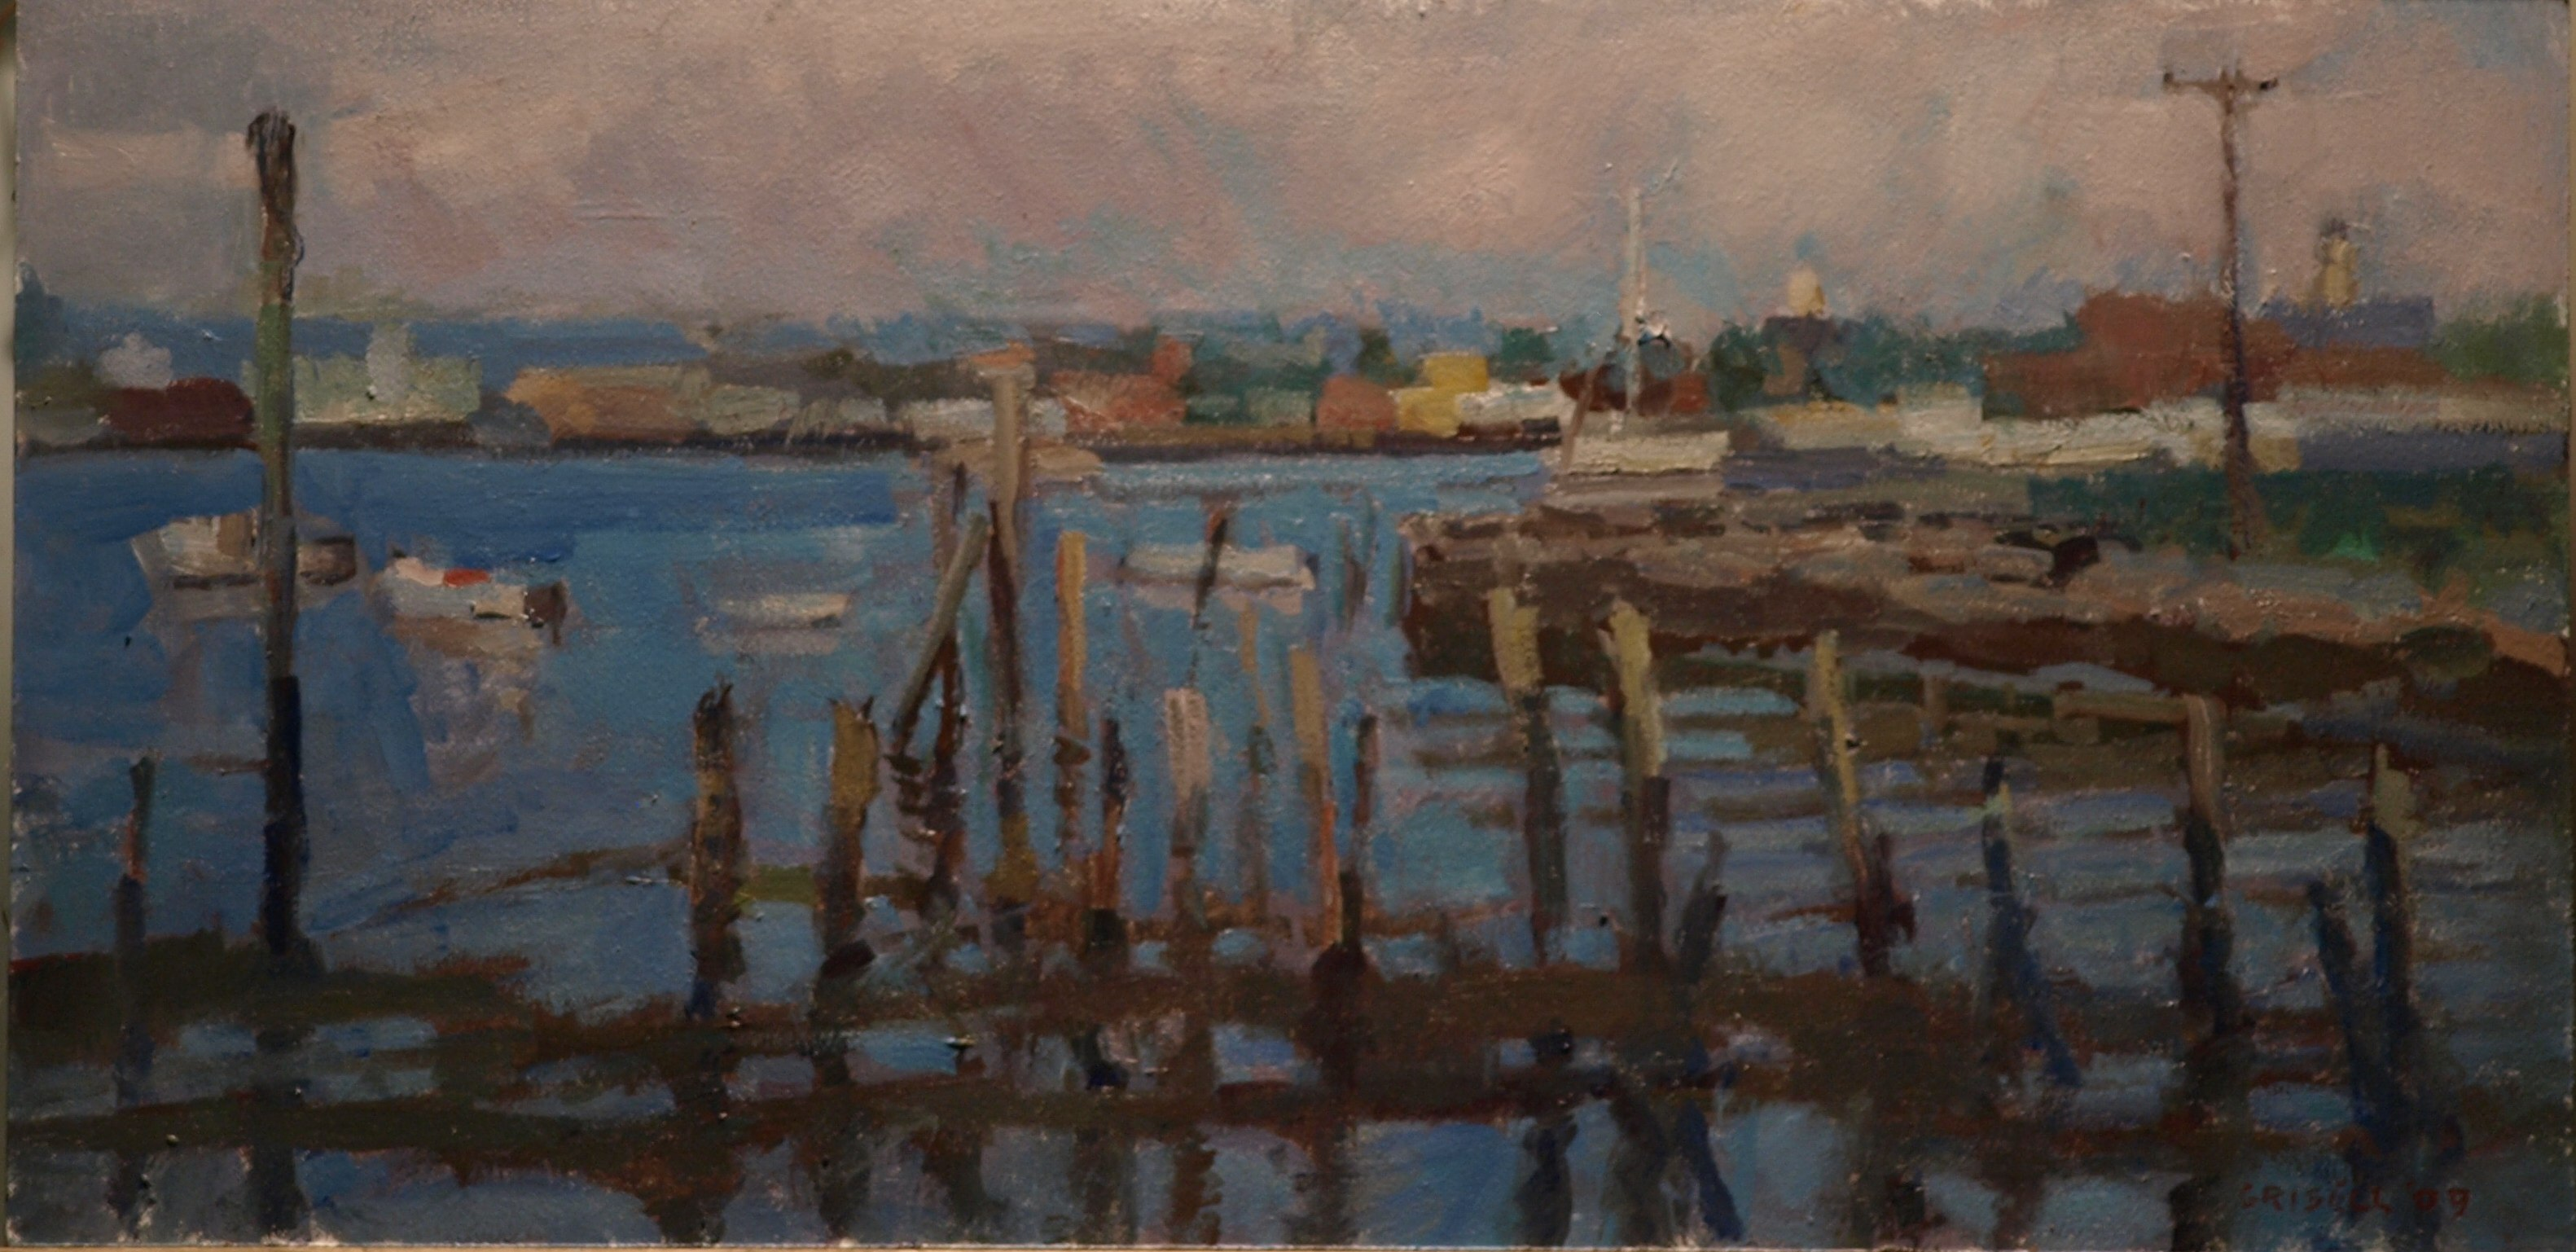 Gloucester Morning, Oil on Panel, 12 x 24 Inches, by Susan Grisell, $450